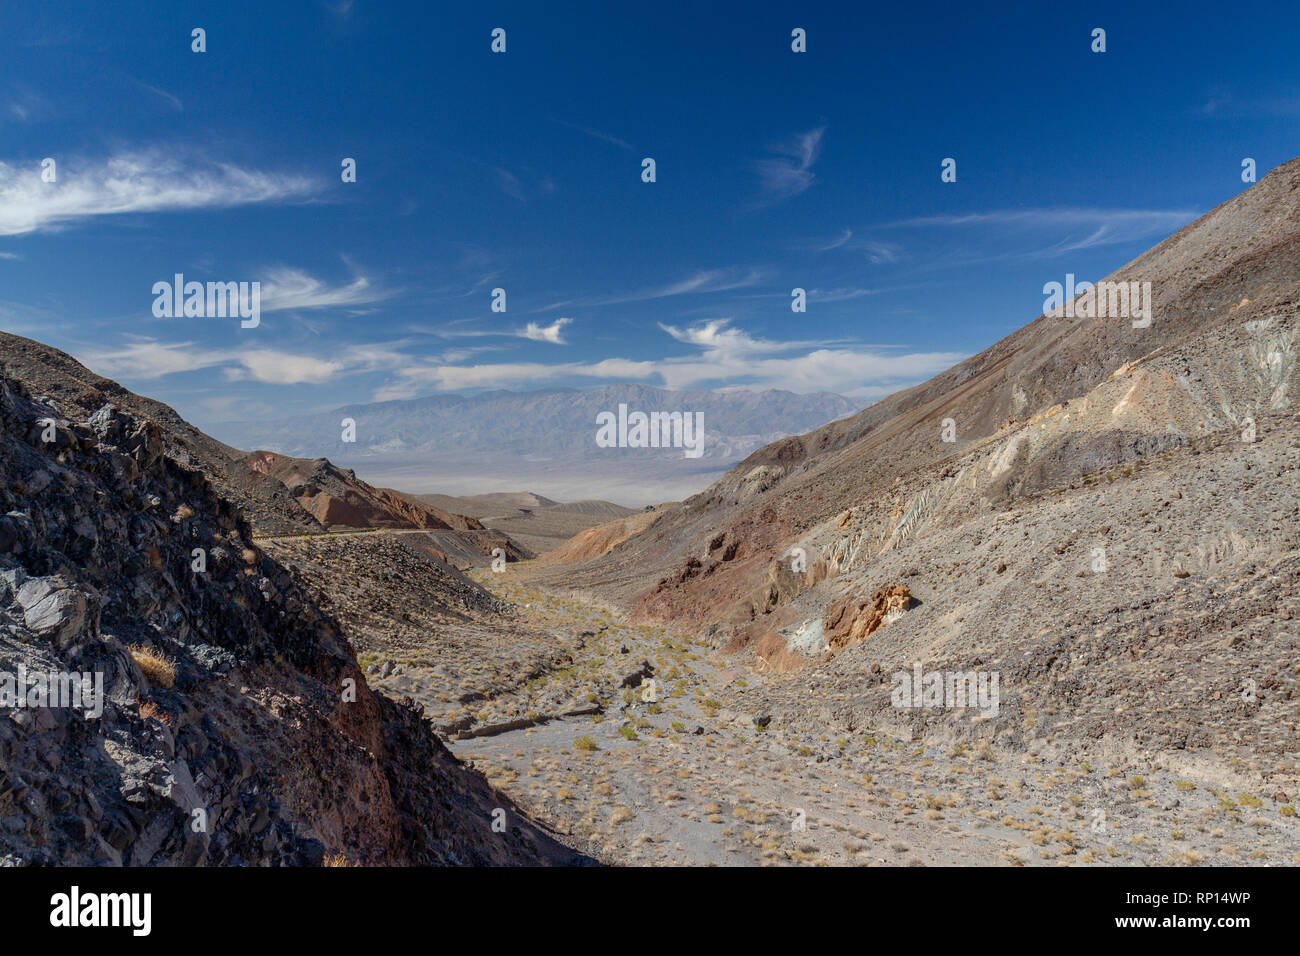 View west from Towne Pass in the direction of Panamint Springs, Death Valley National Park, California, United States. Stock Photo